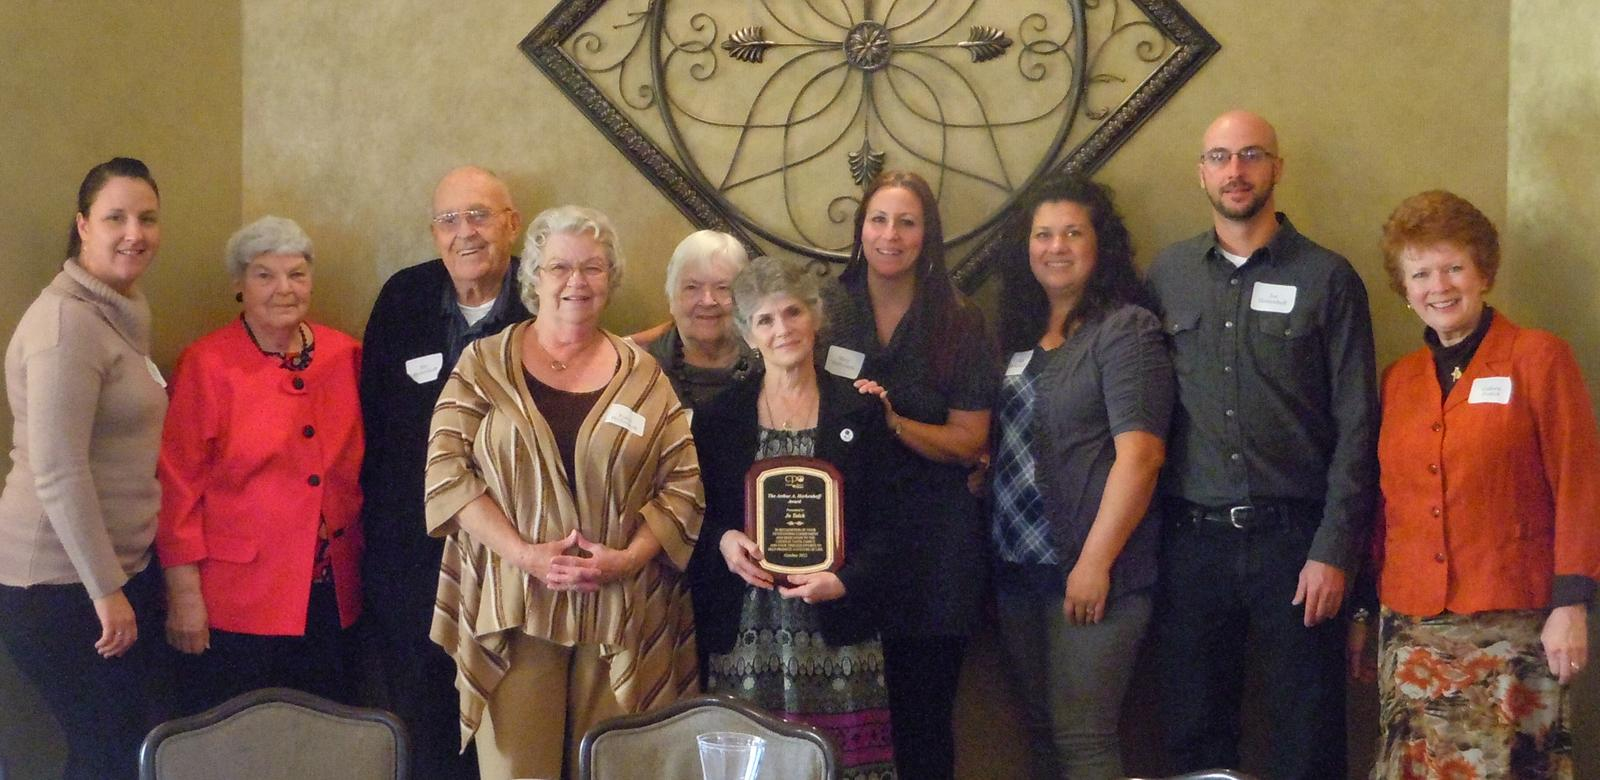 Jo Tolck with Herkenhoff family members. Left to Right: Meghan Habisch (daughter), Barb Herkenhoff (sister-in-law), Ray Herkenhoff (brother), Kathy Herkenhoff (Art's wife), Lorraine Peterson (sister), Jo Tolck, Mary Mattheison (daughter), Nikki Herkenhoff (daughter-in-law), Joe Herkenhoff (son) and Colleen Perfect, President of CPO.